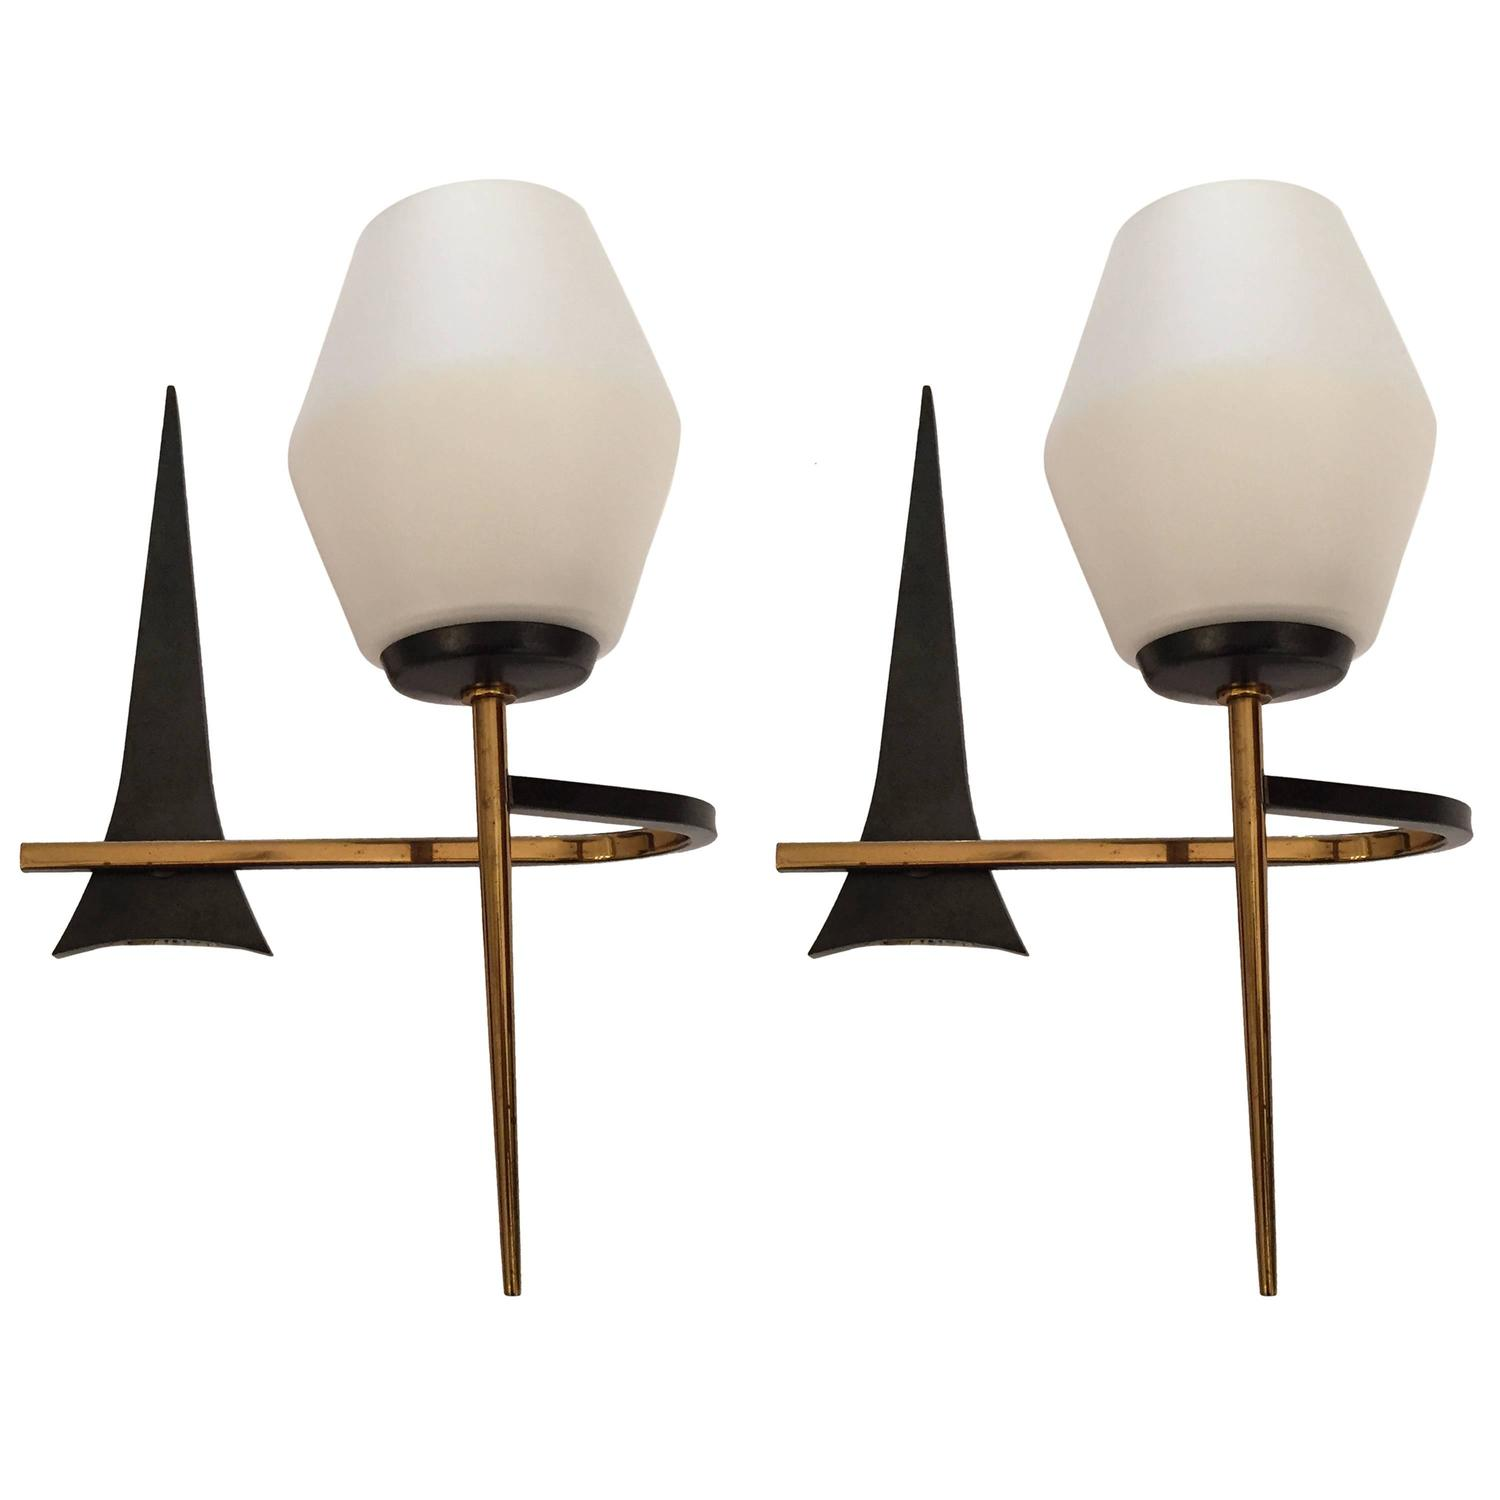 Wall Sconces Mid Century Modern : Pair of French 1950s Mid-Century Modern Sconces at 1stdibs